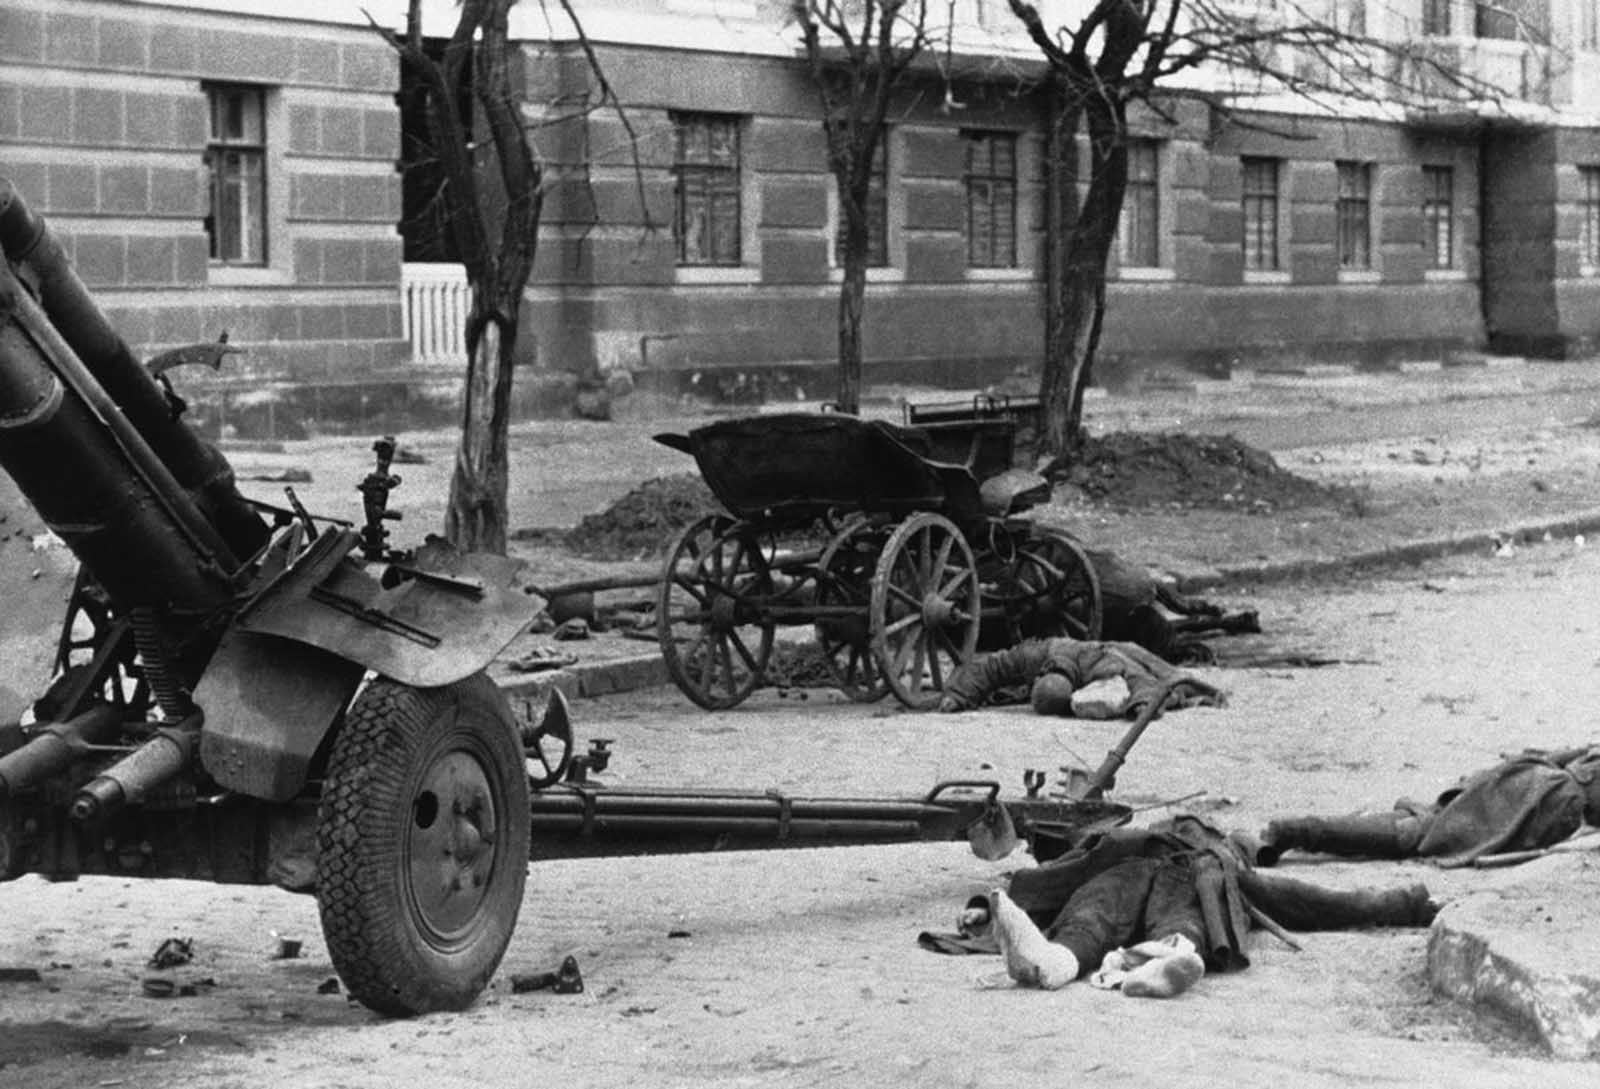 Evidence of Soviet resistance in the streets of Rostov, a scene in late 1941, encountered by the Germans as they entered the heavily besieged city.